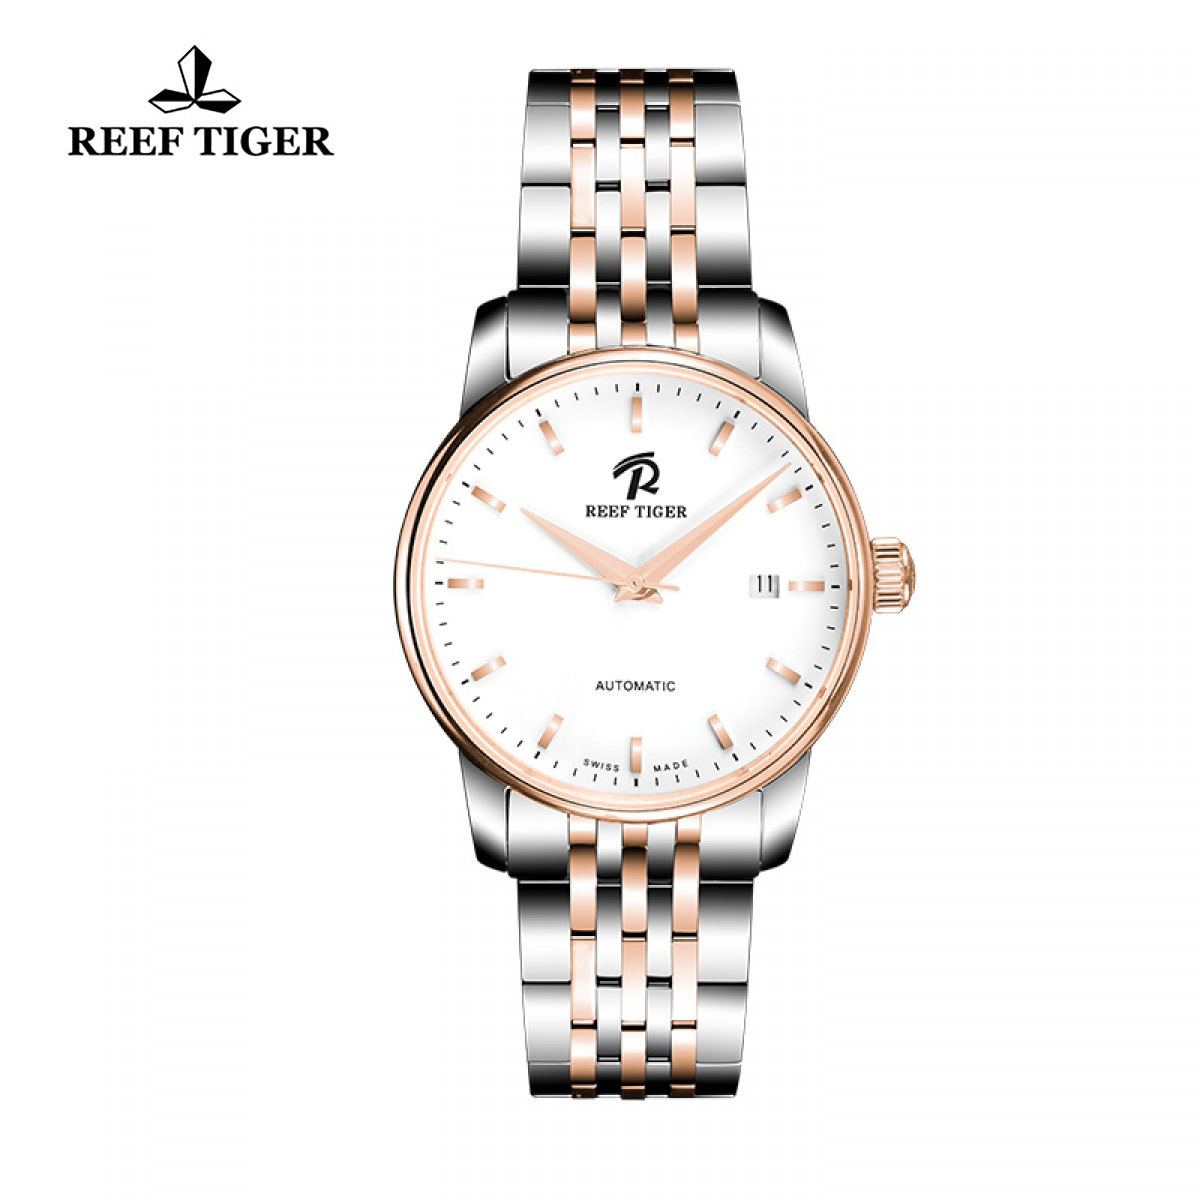 Reef Tiger Classic Fusion Dress Watch with Date White Dial Two Tone Watch RGA810-TWT